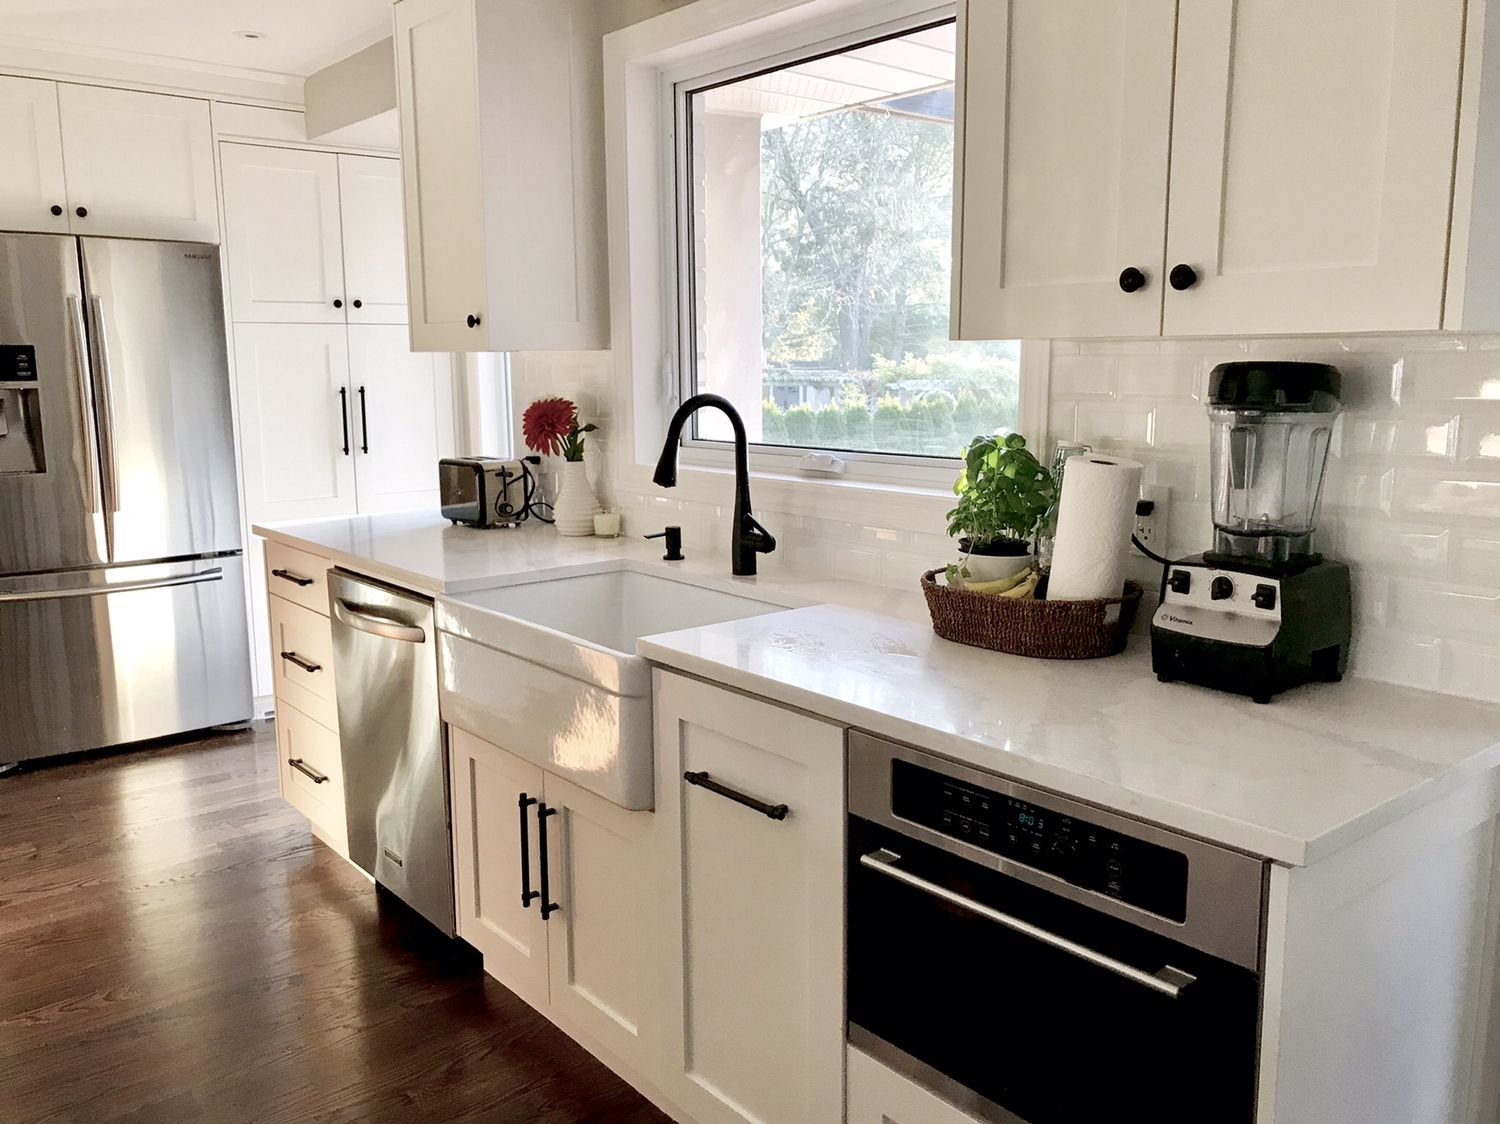 Pin by graceful birth doula on kitchen reno ideas in